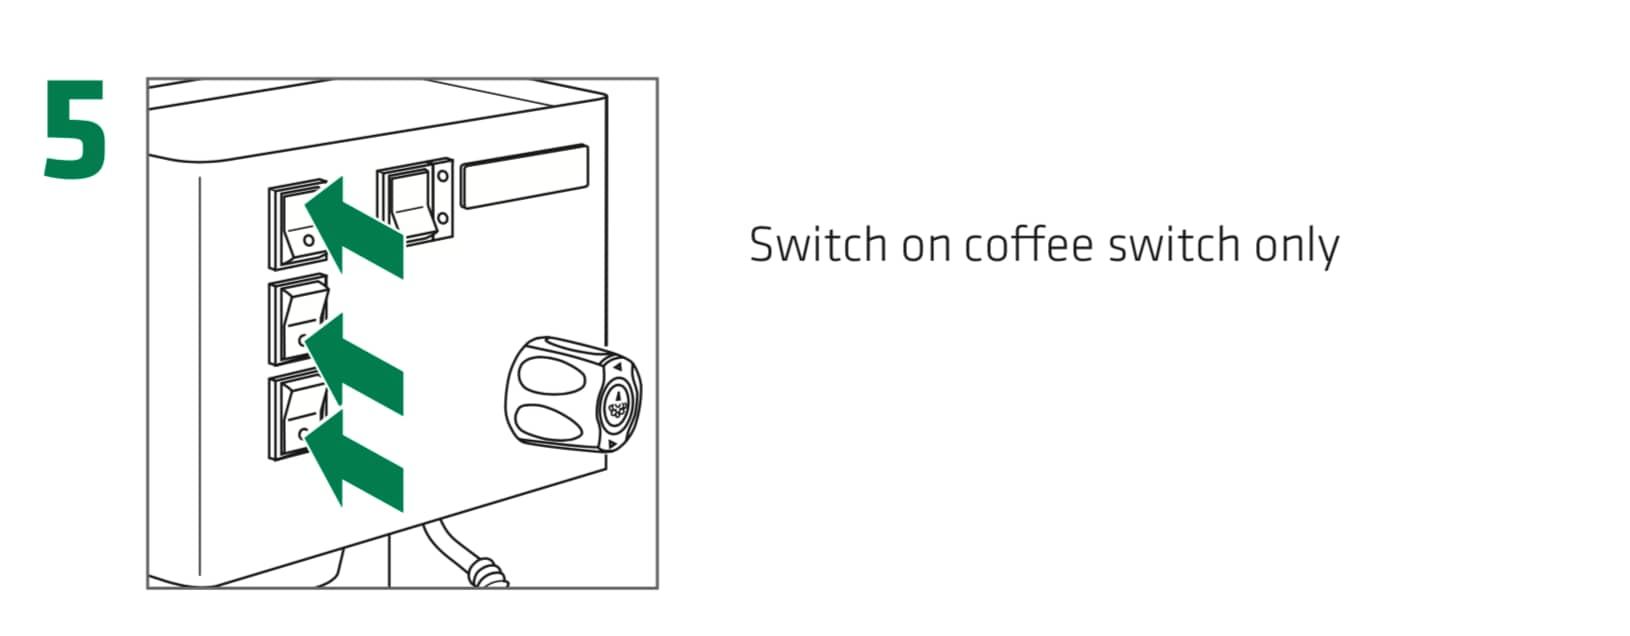 How to set up the Rancilio Silvia Espresso Machine, Step 5 : Switch on coffee switch only , located at the top left corner of the espresso machine.